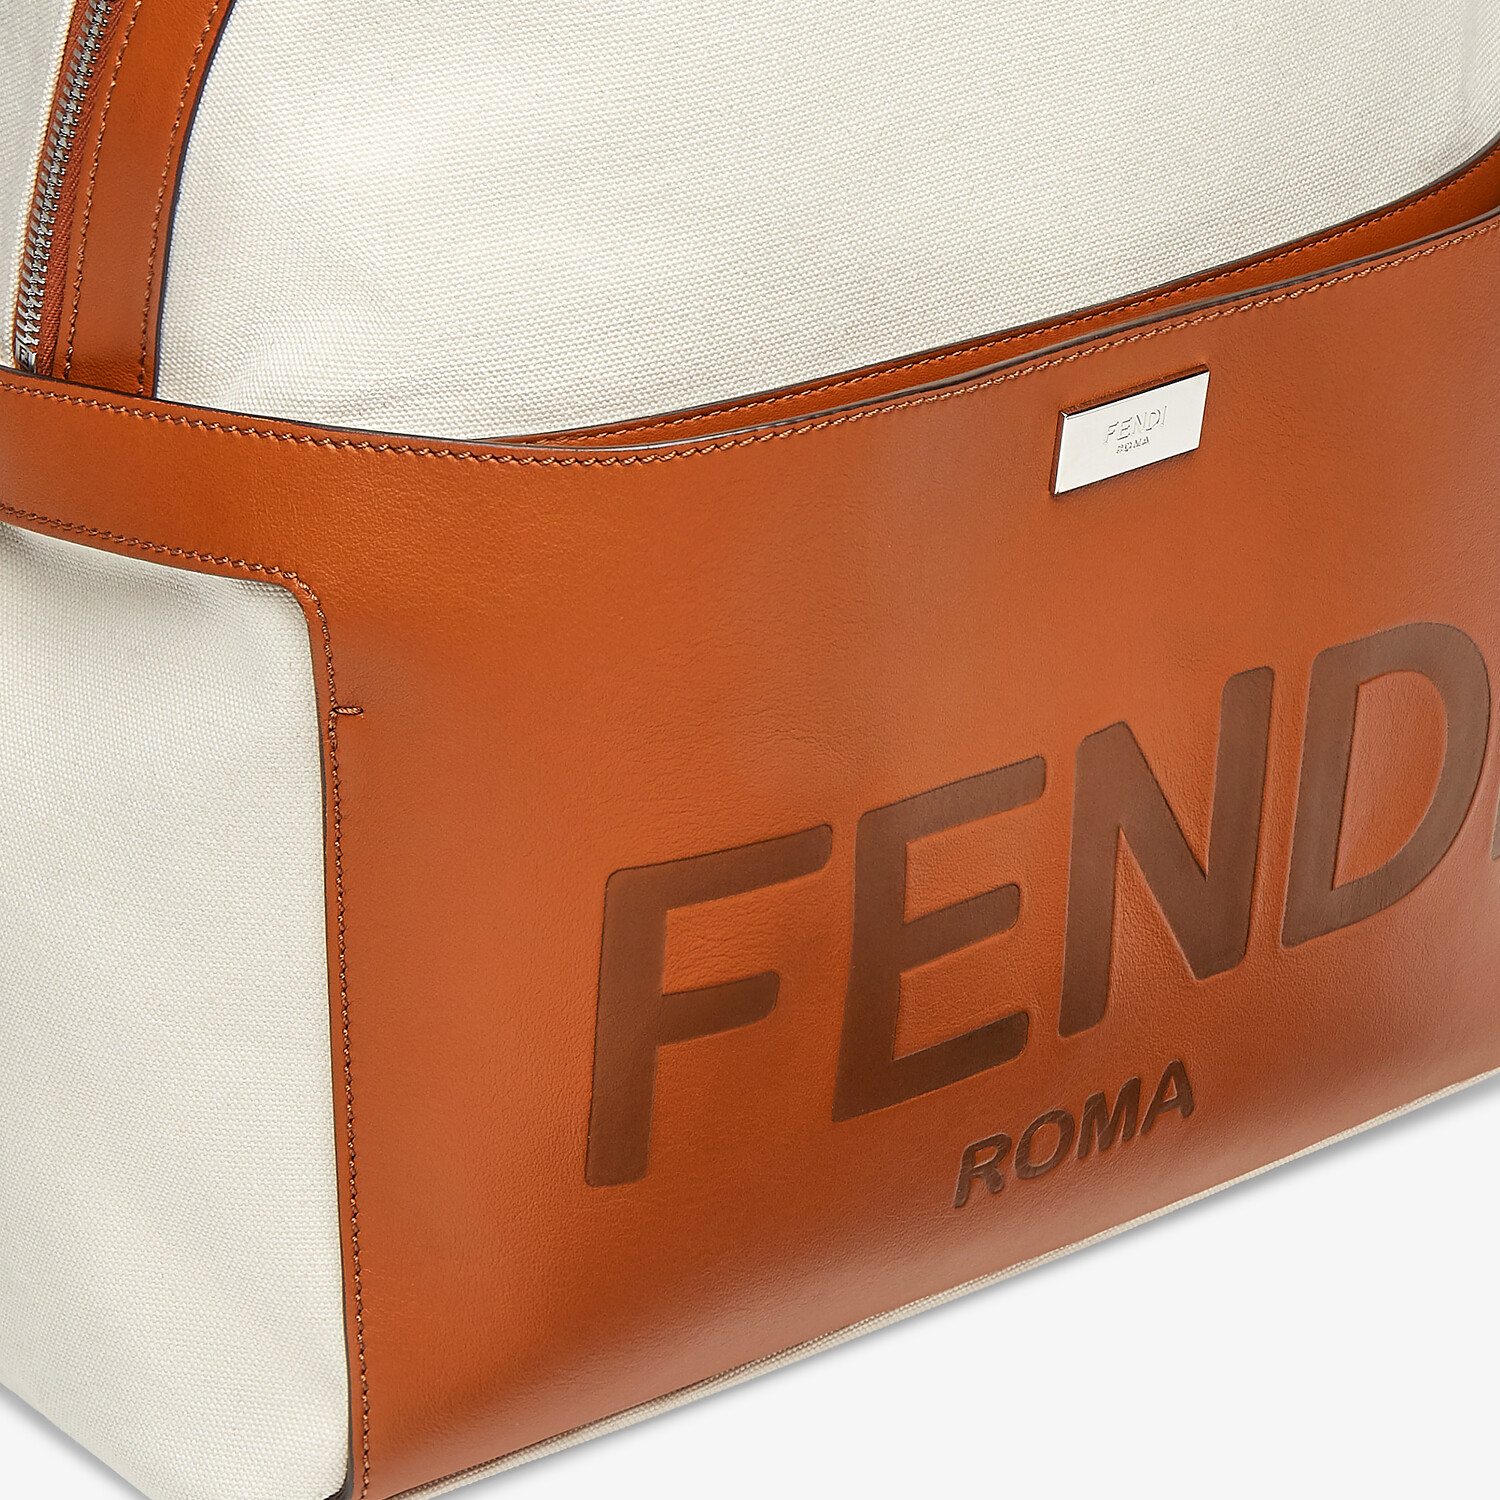 FENDI ESSENTIAL BACKPACK - Undyed canvas backpack - view 5 detail